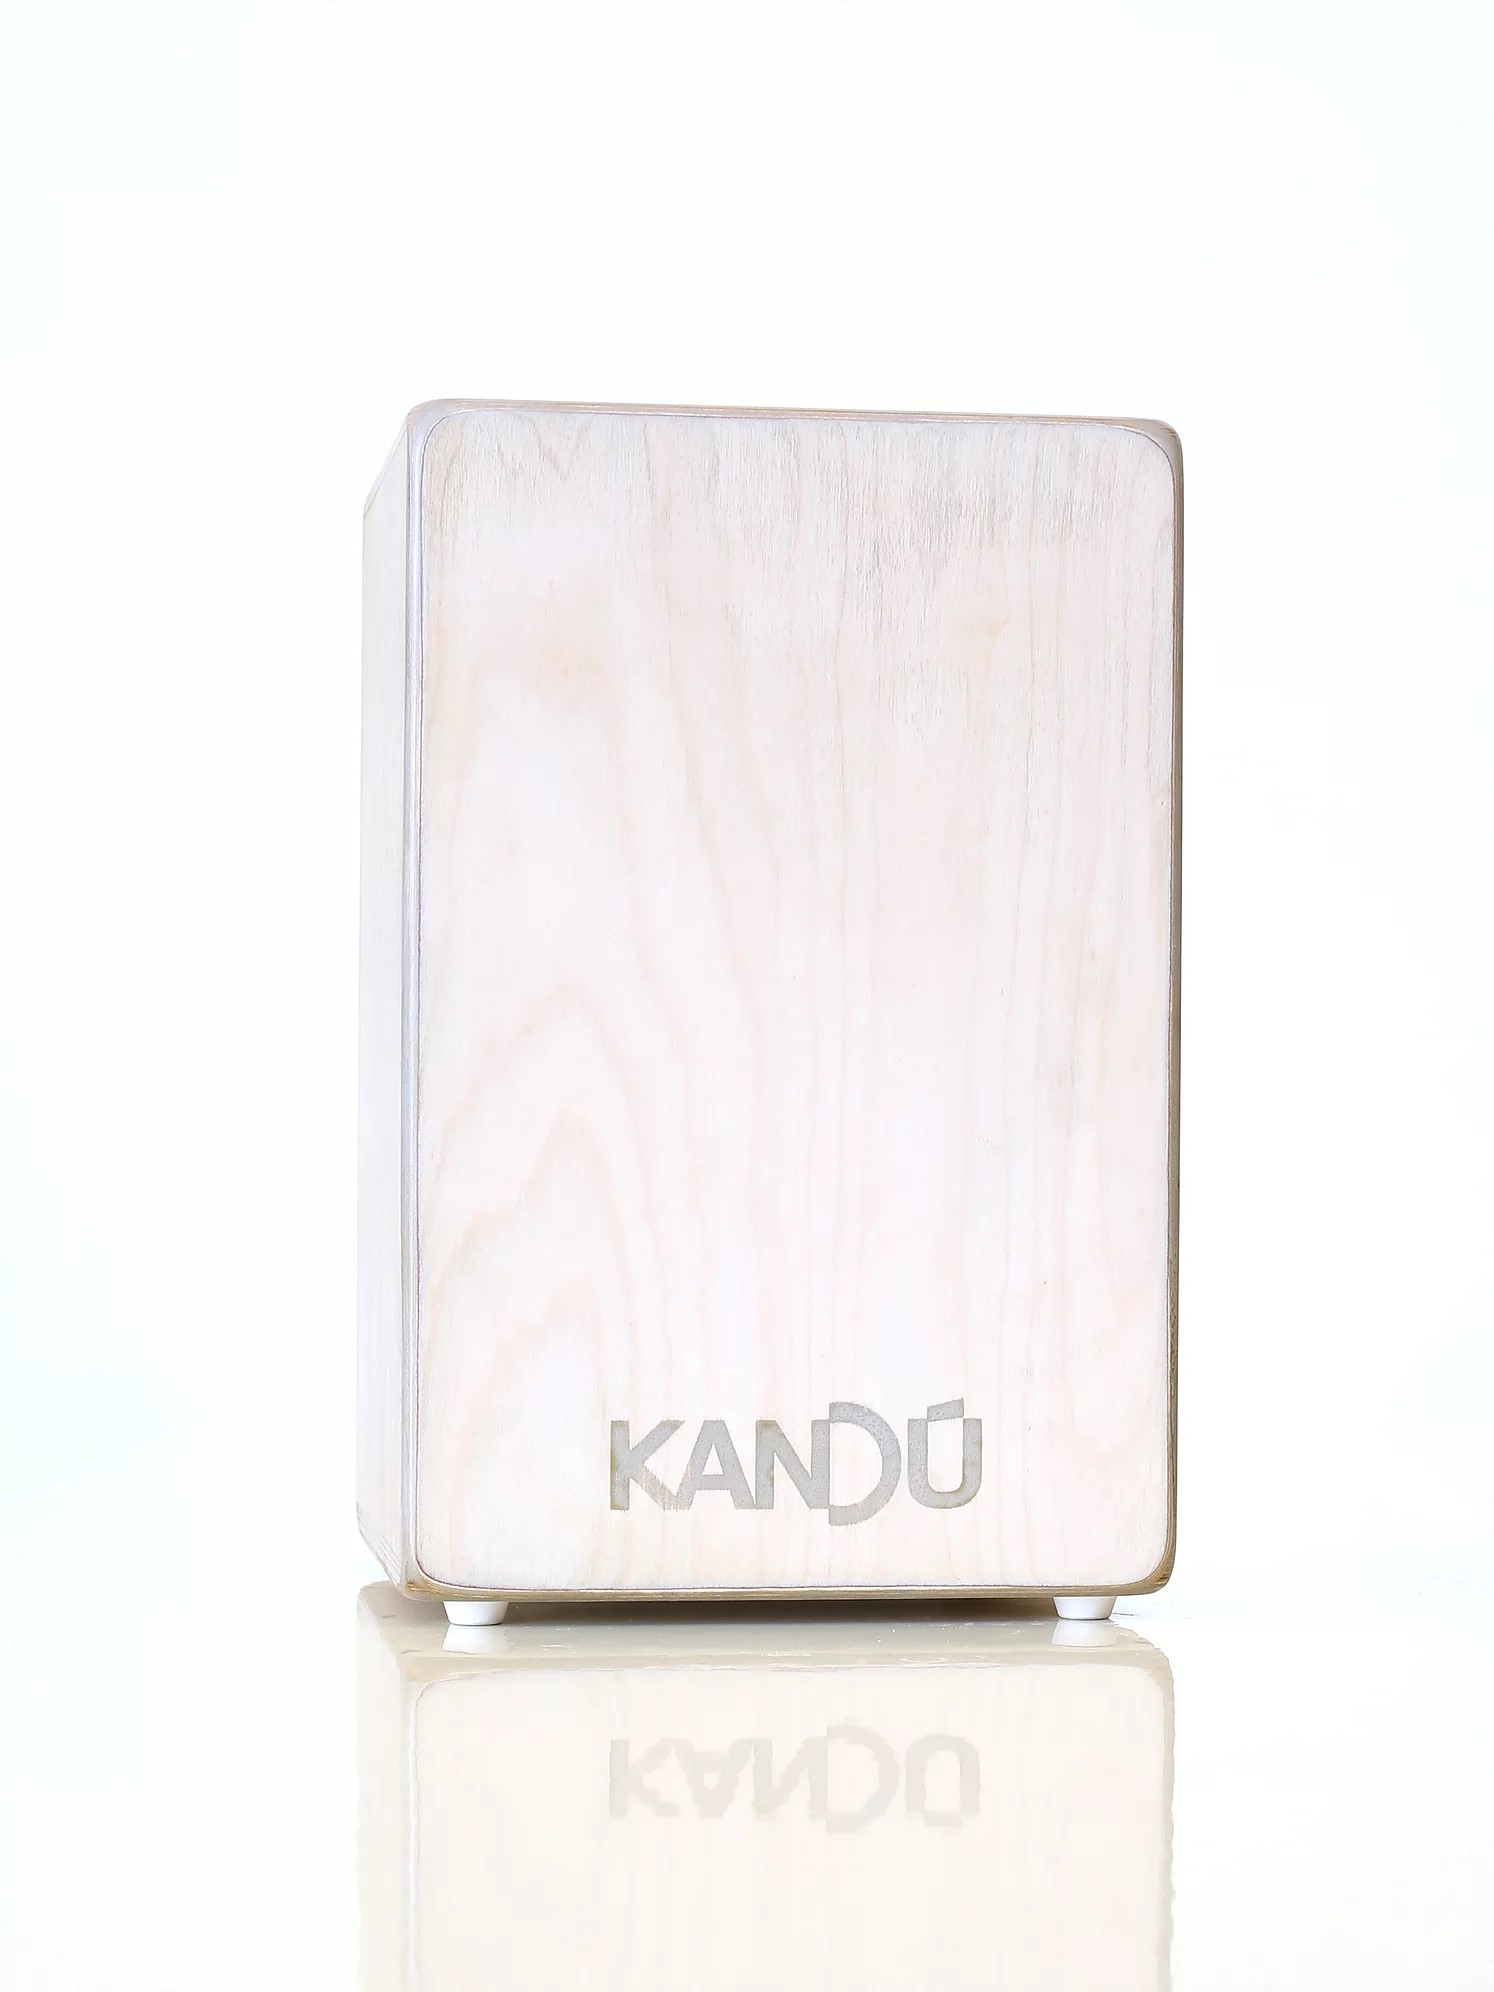 Kandu Flame Wild, Whitewash